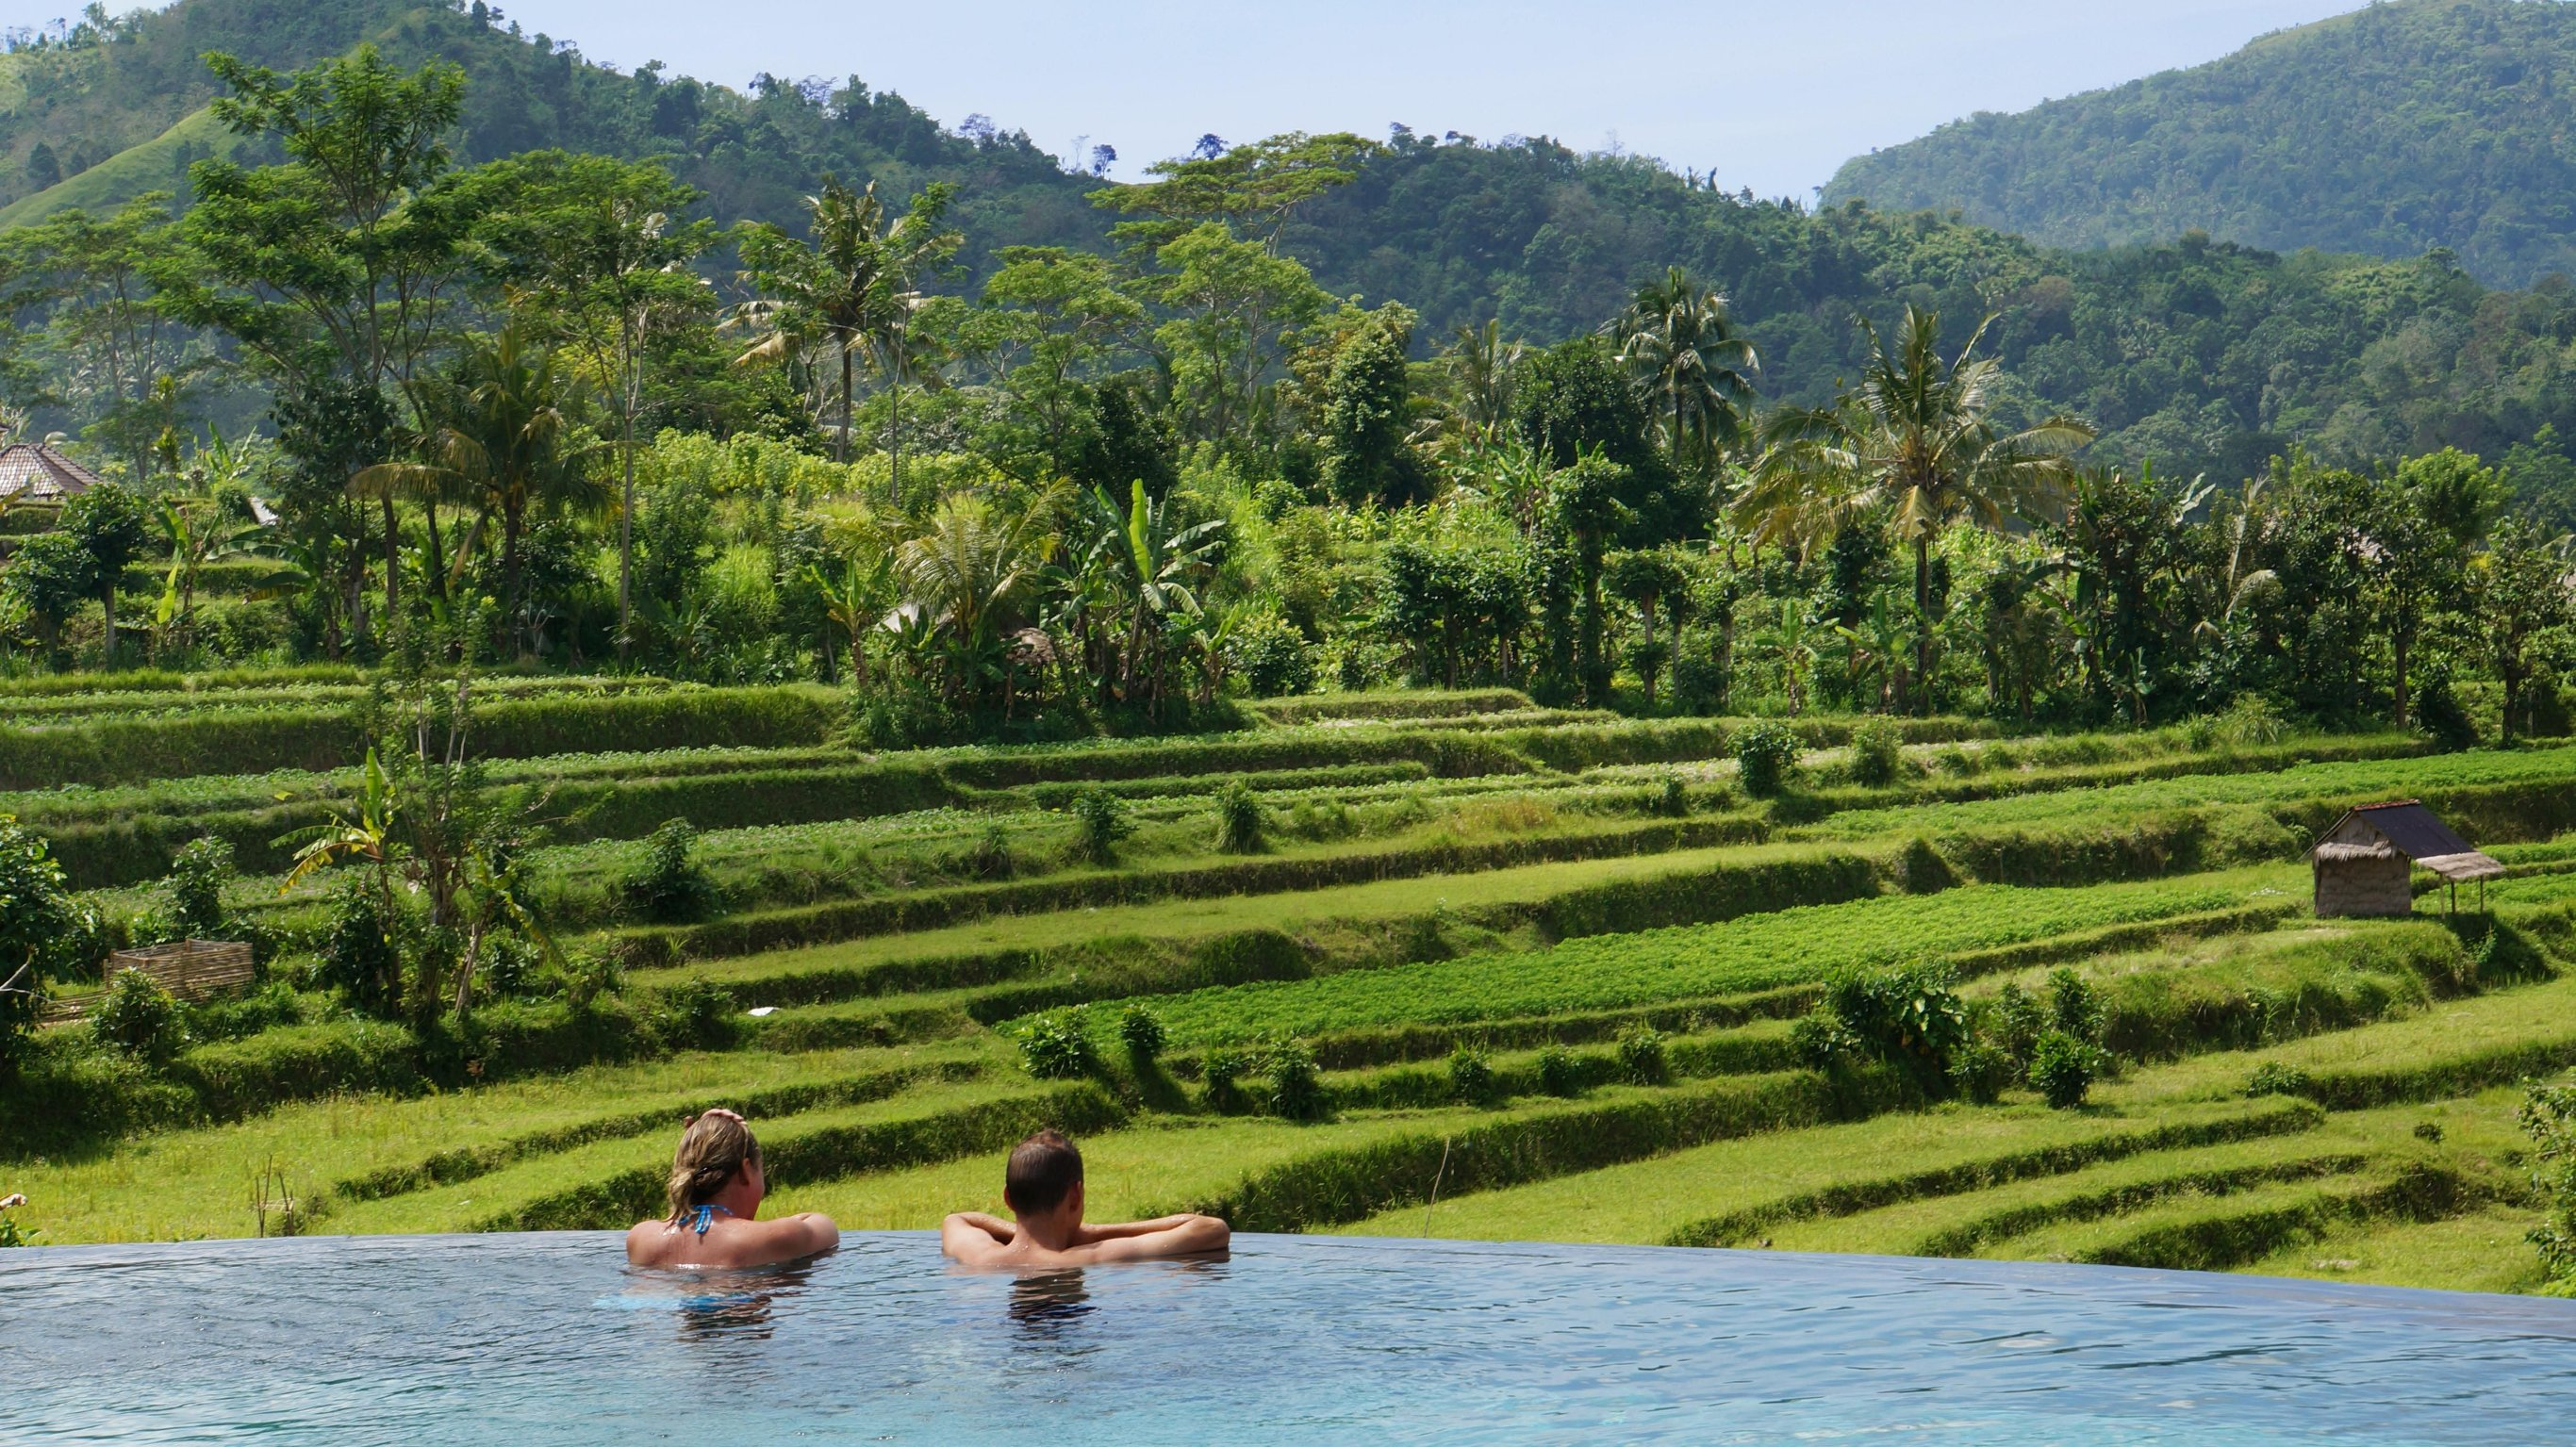 5-Day Bali Trip to The Island of Gods - Indonesia Itinerary